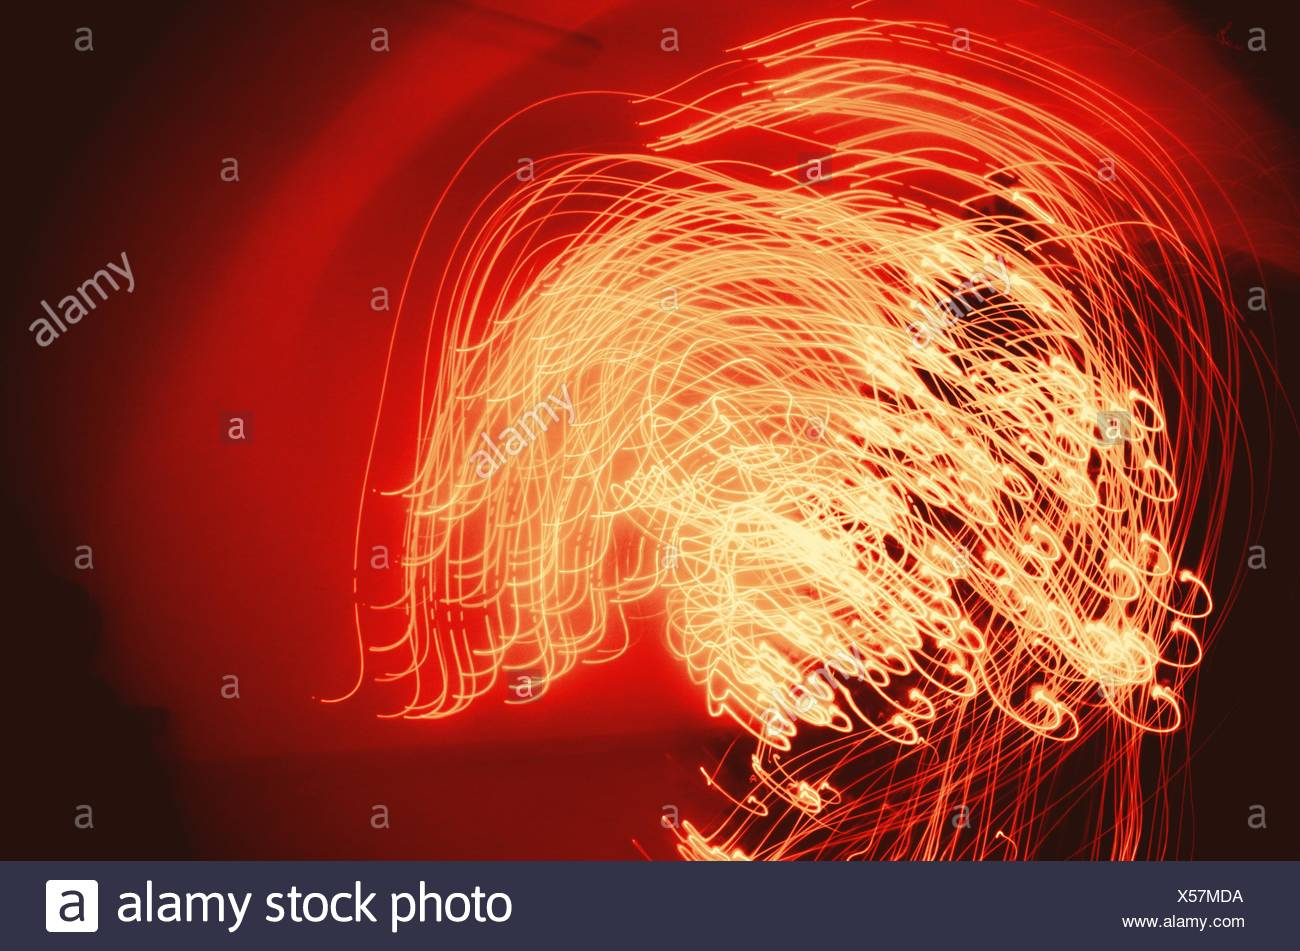 Abstract Image Of Illuminated Light Trails During Christmas - Stock Image